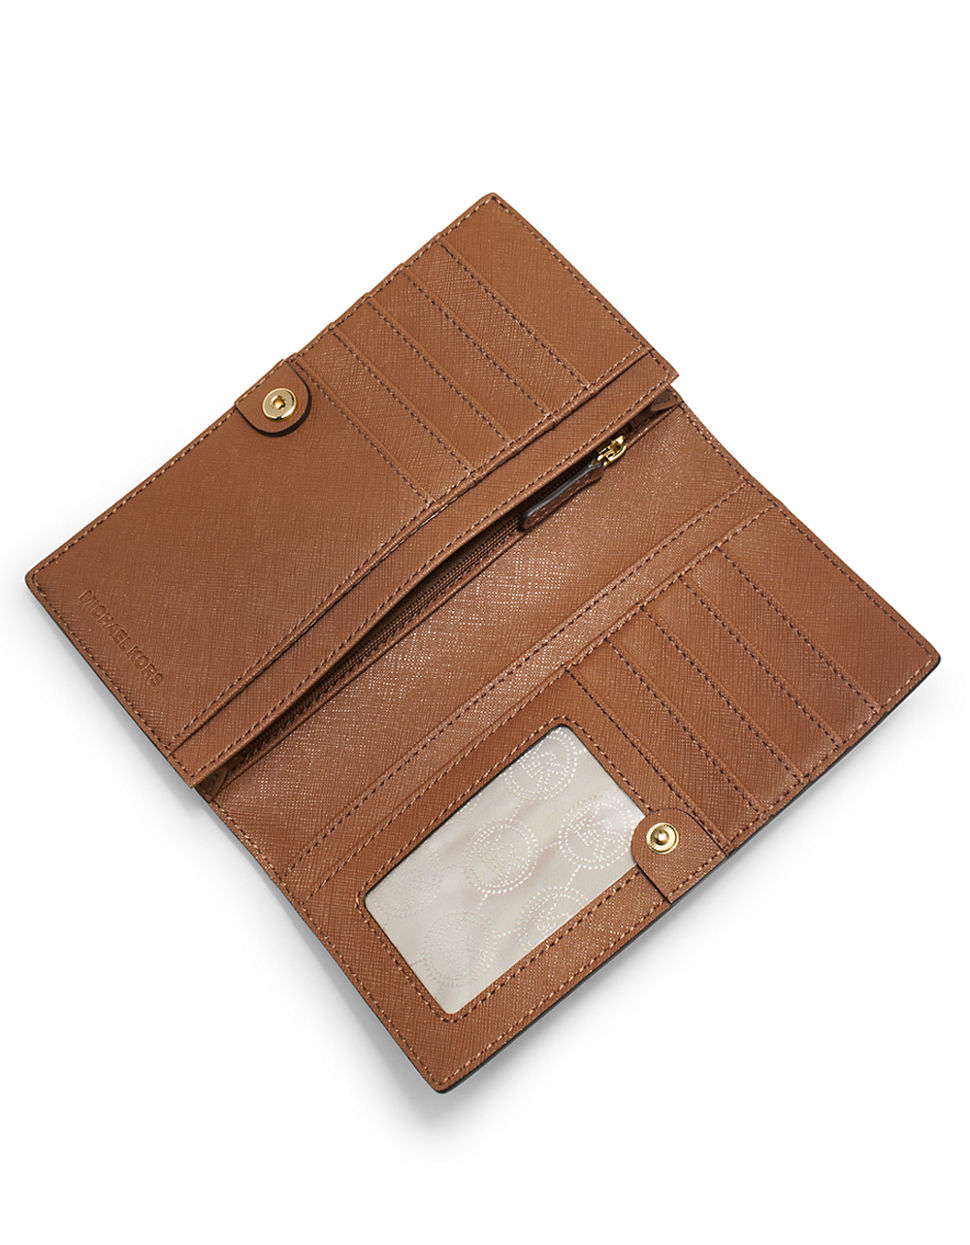 30f968932112 Michael Kors Saffiano Leather Slim Wallet | Stanford Center for ...